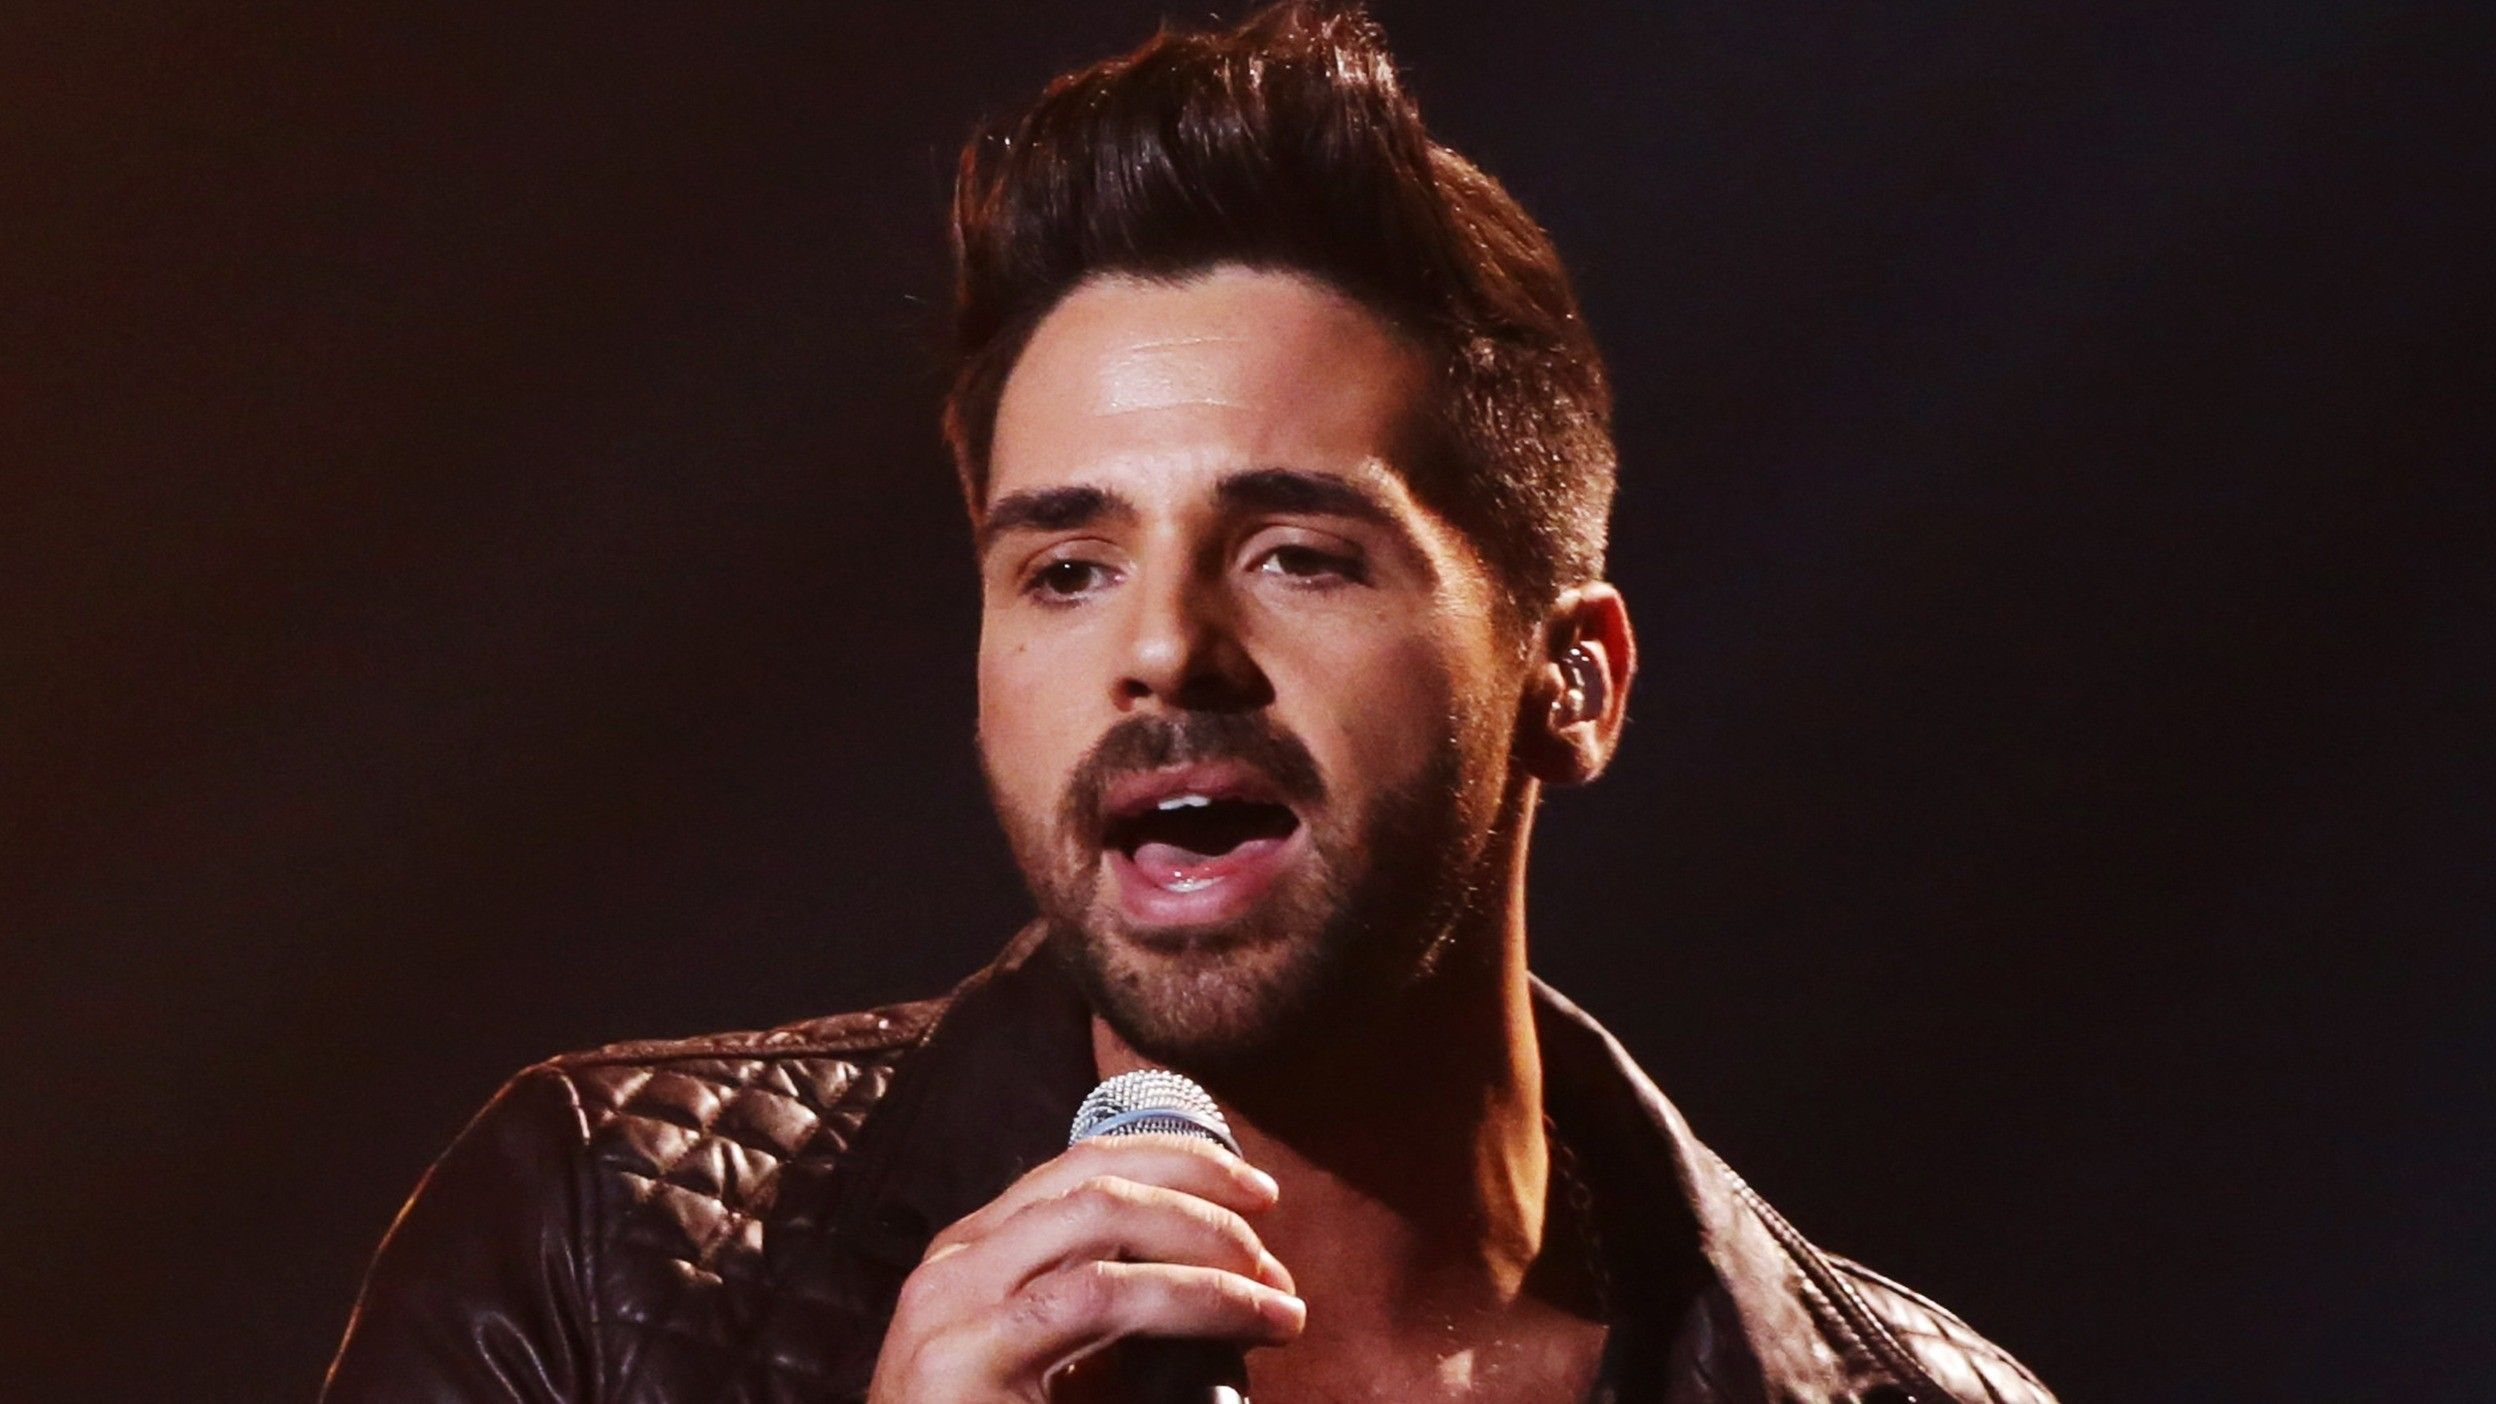 Download Ben Haenow's songs from The X Factor